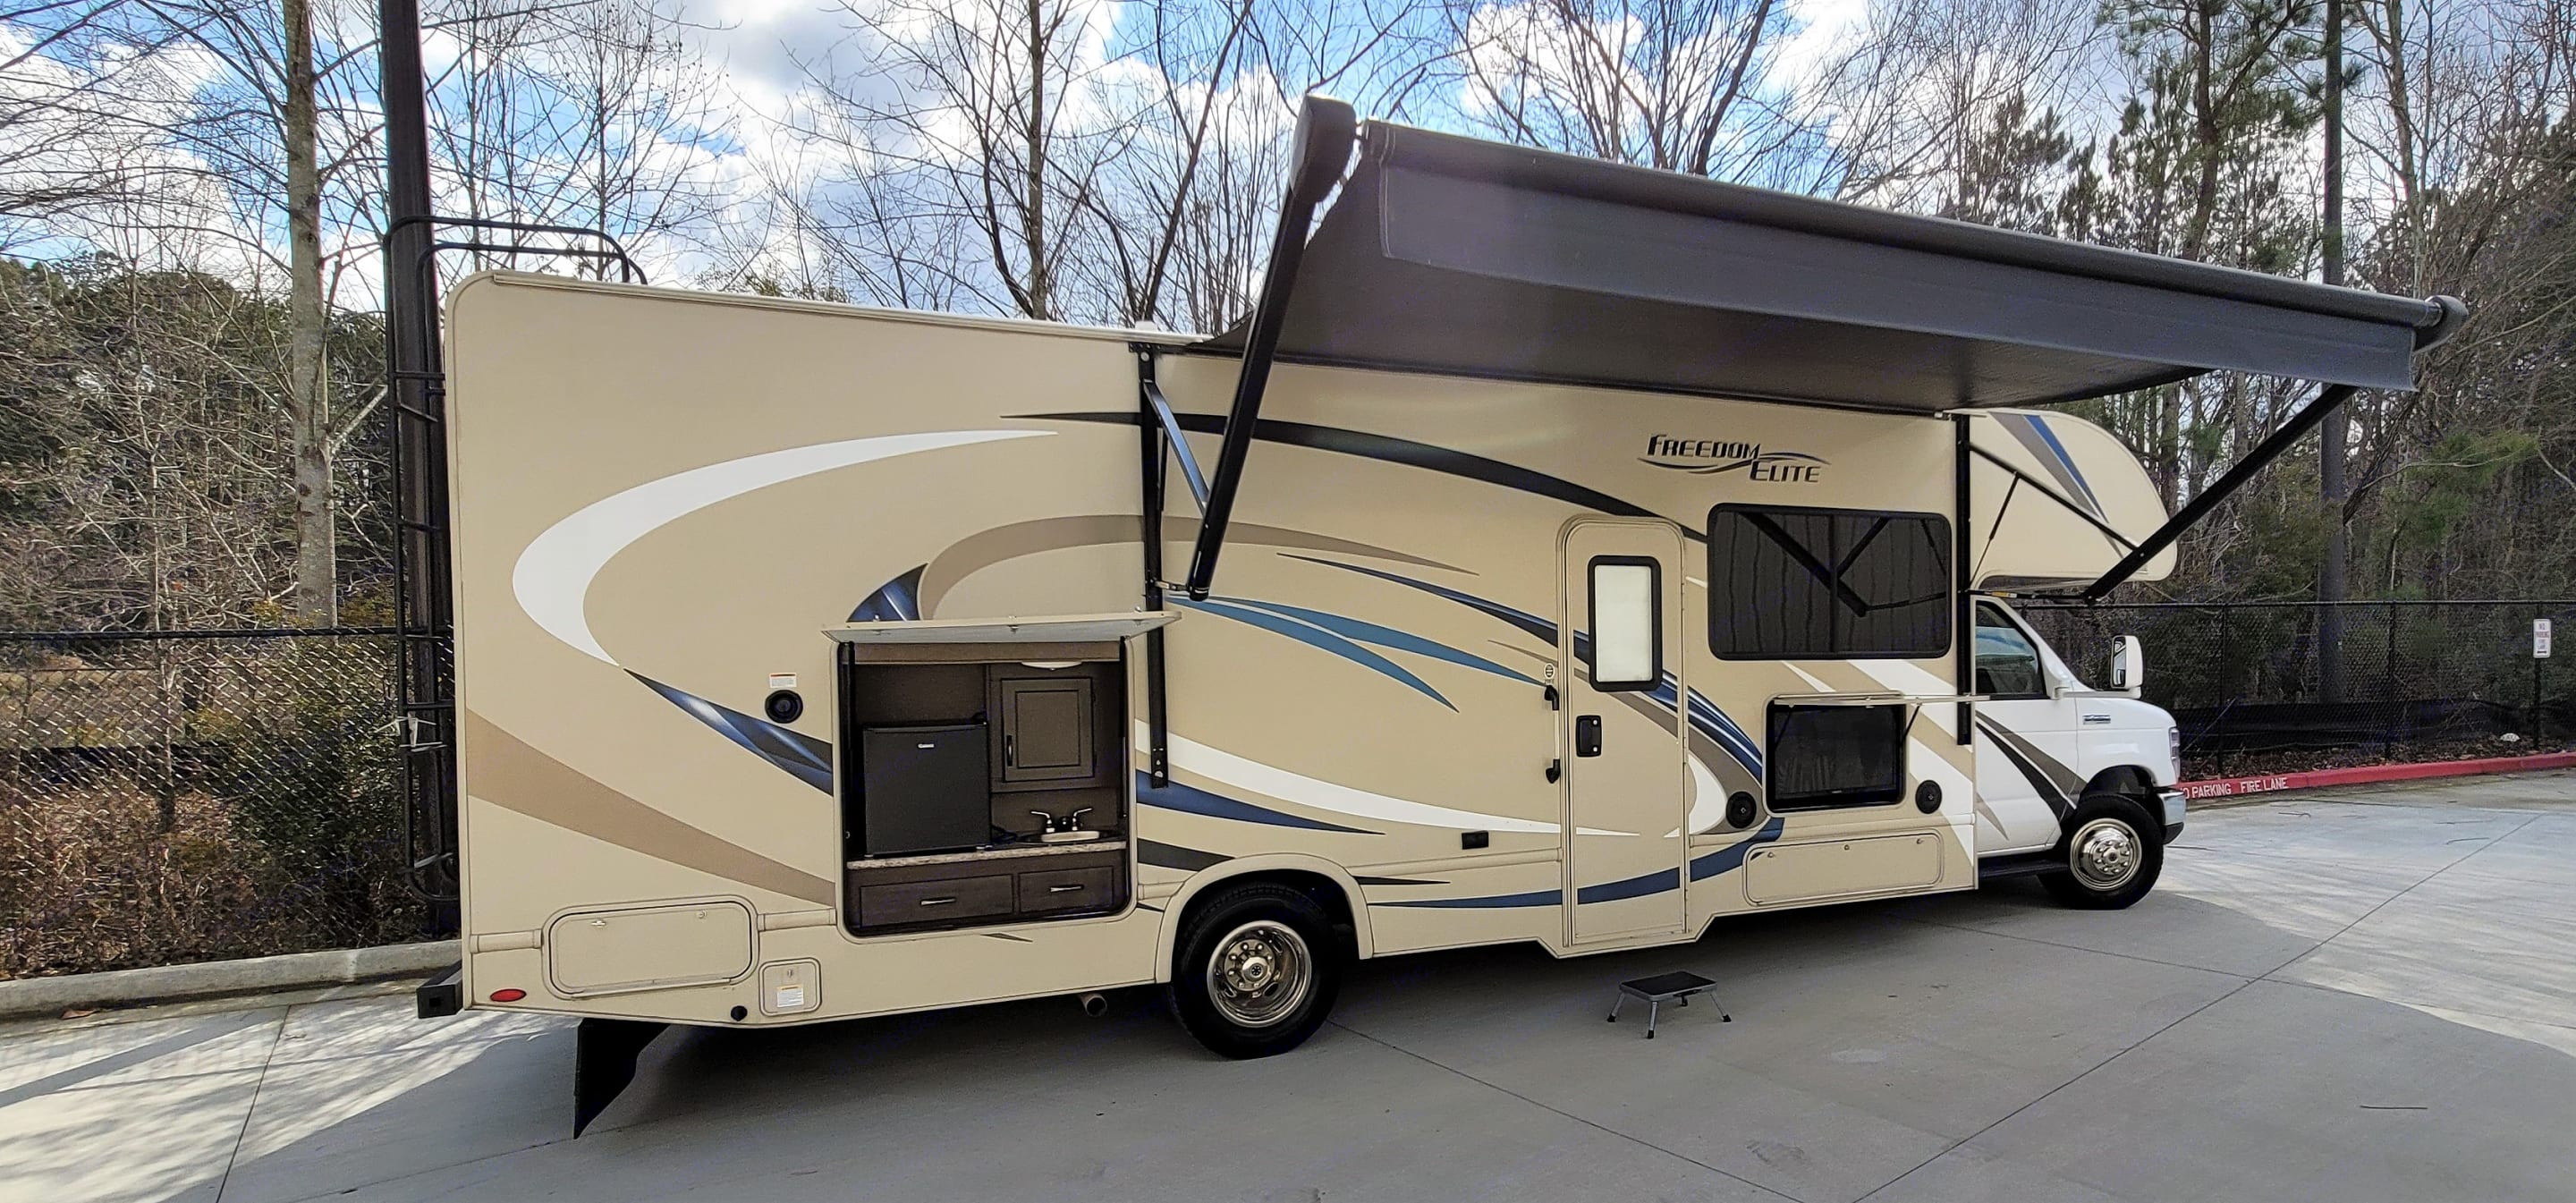 outside kitchen sink , refrigerator and table. Thor Motor Coach Freedom Elite 2018